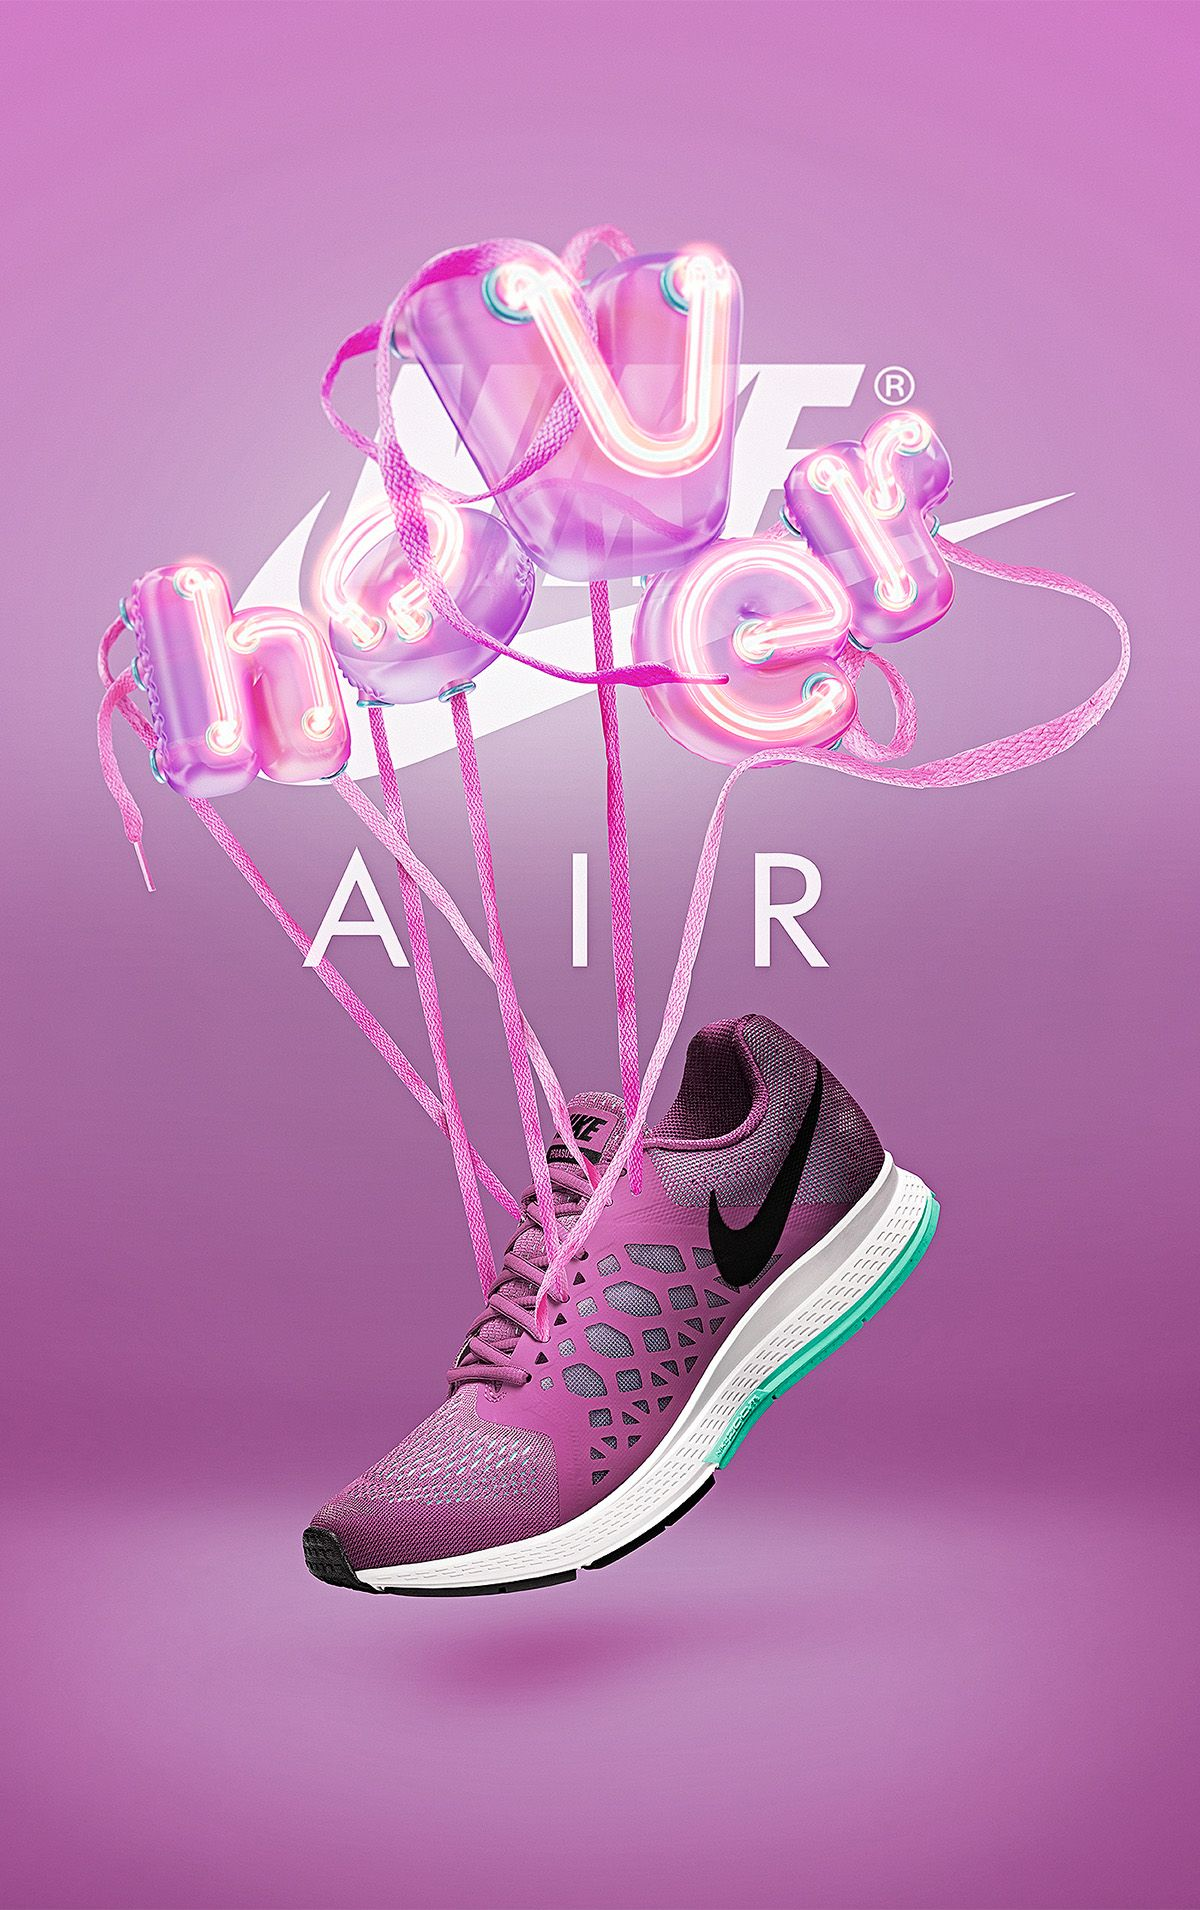 Nike Air Hover on Behance in 2020